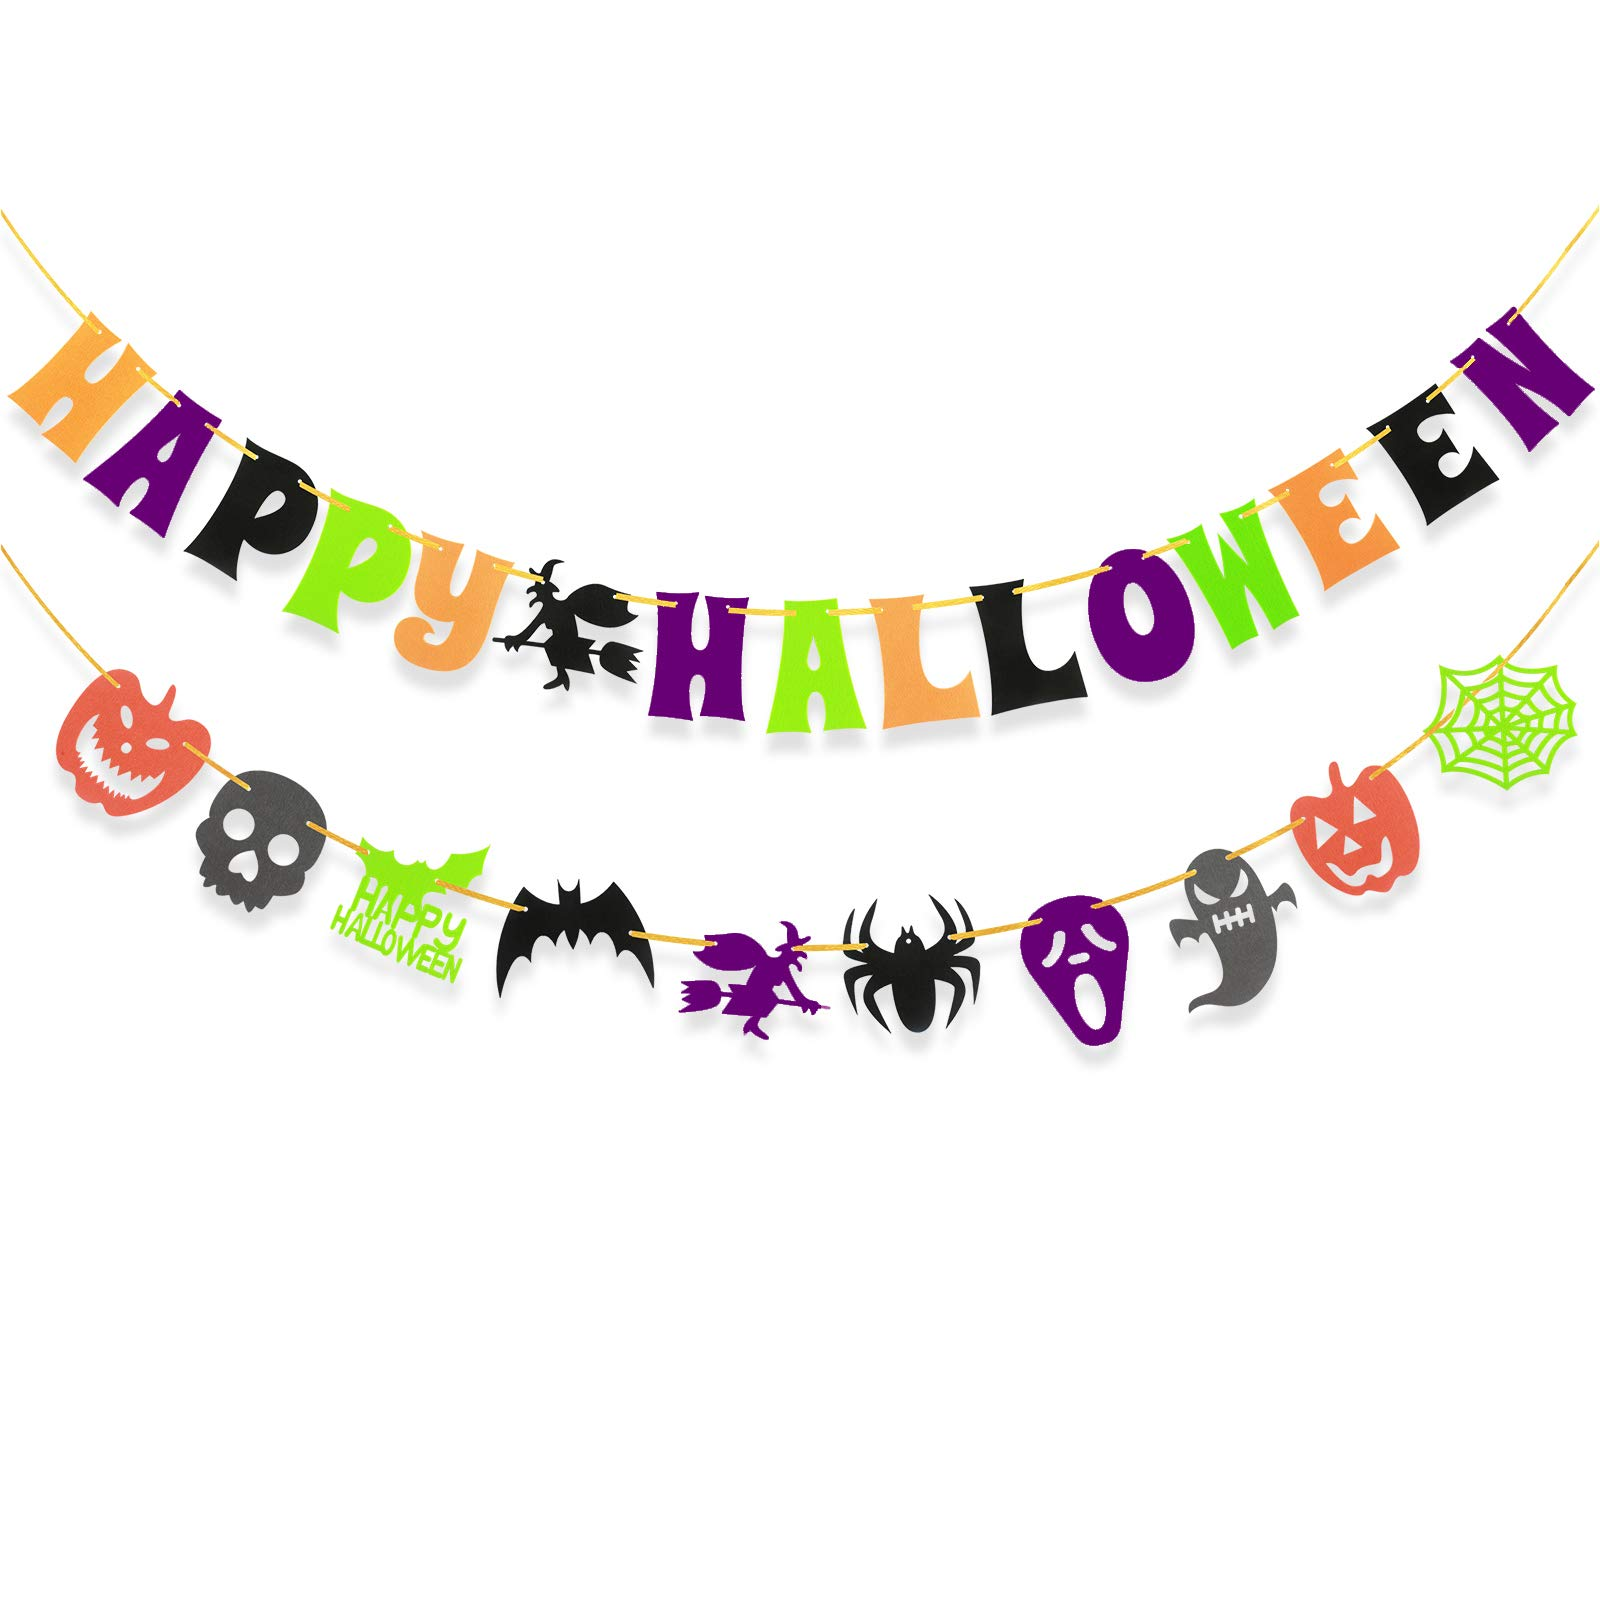 Happy Halloween Letter Banner Bunting Colourful Flags with Bat Pumpkin Ghost Spider Switch Skull Garland,Halloween Party Decoration Kit